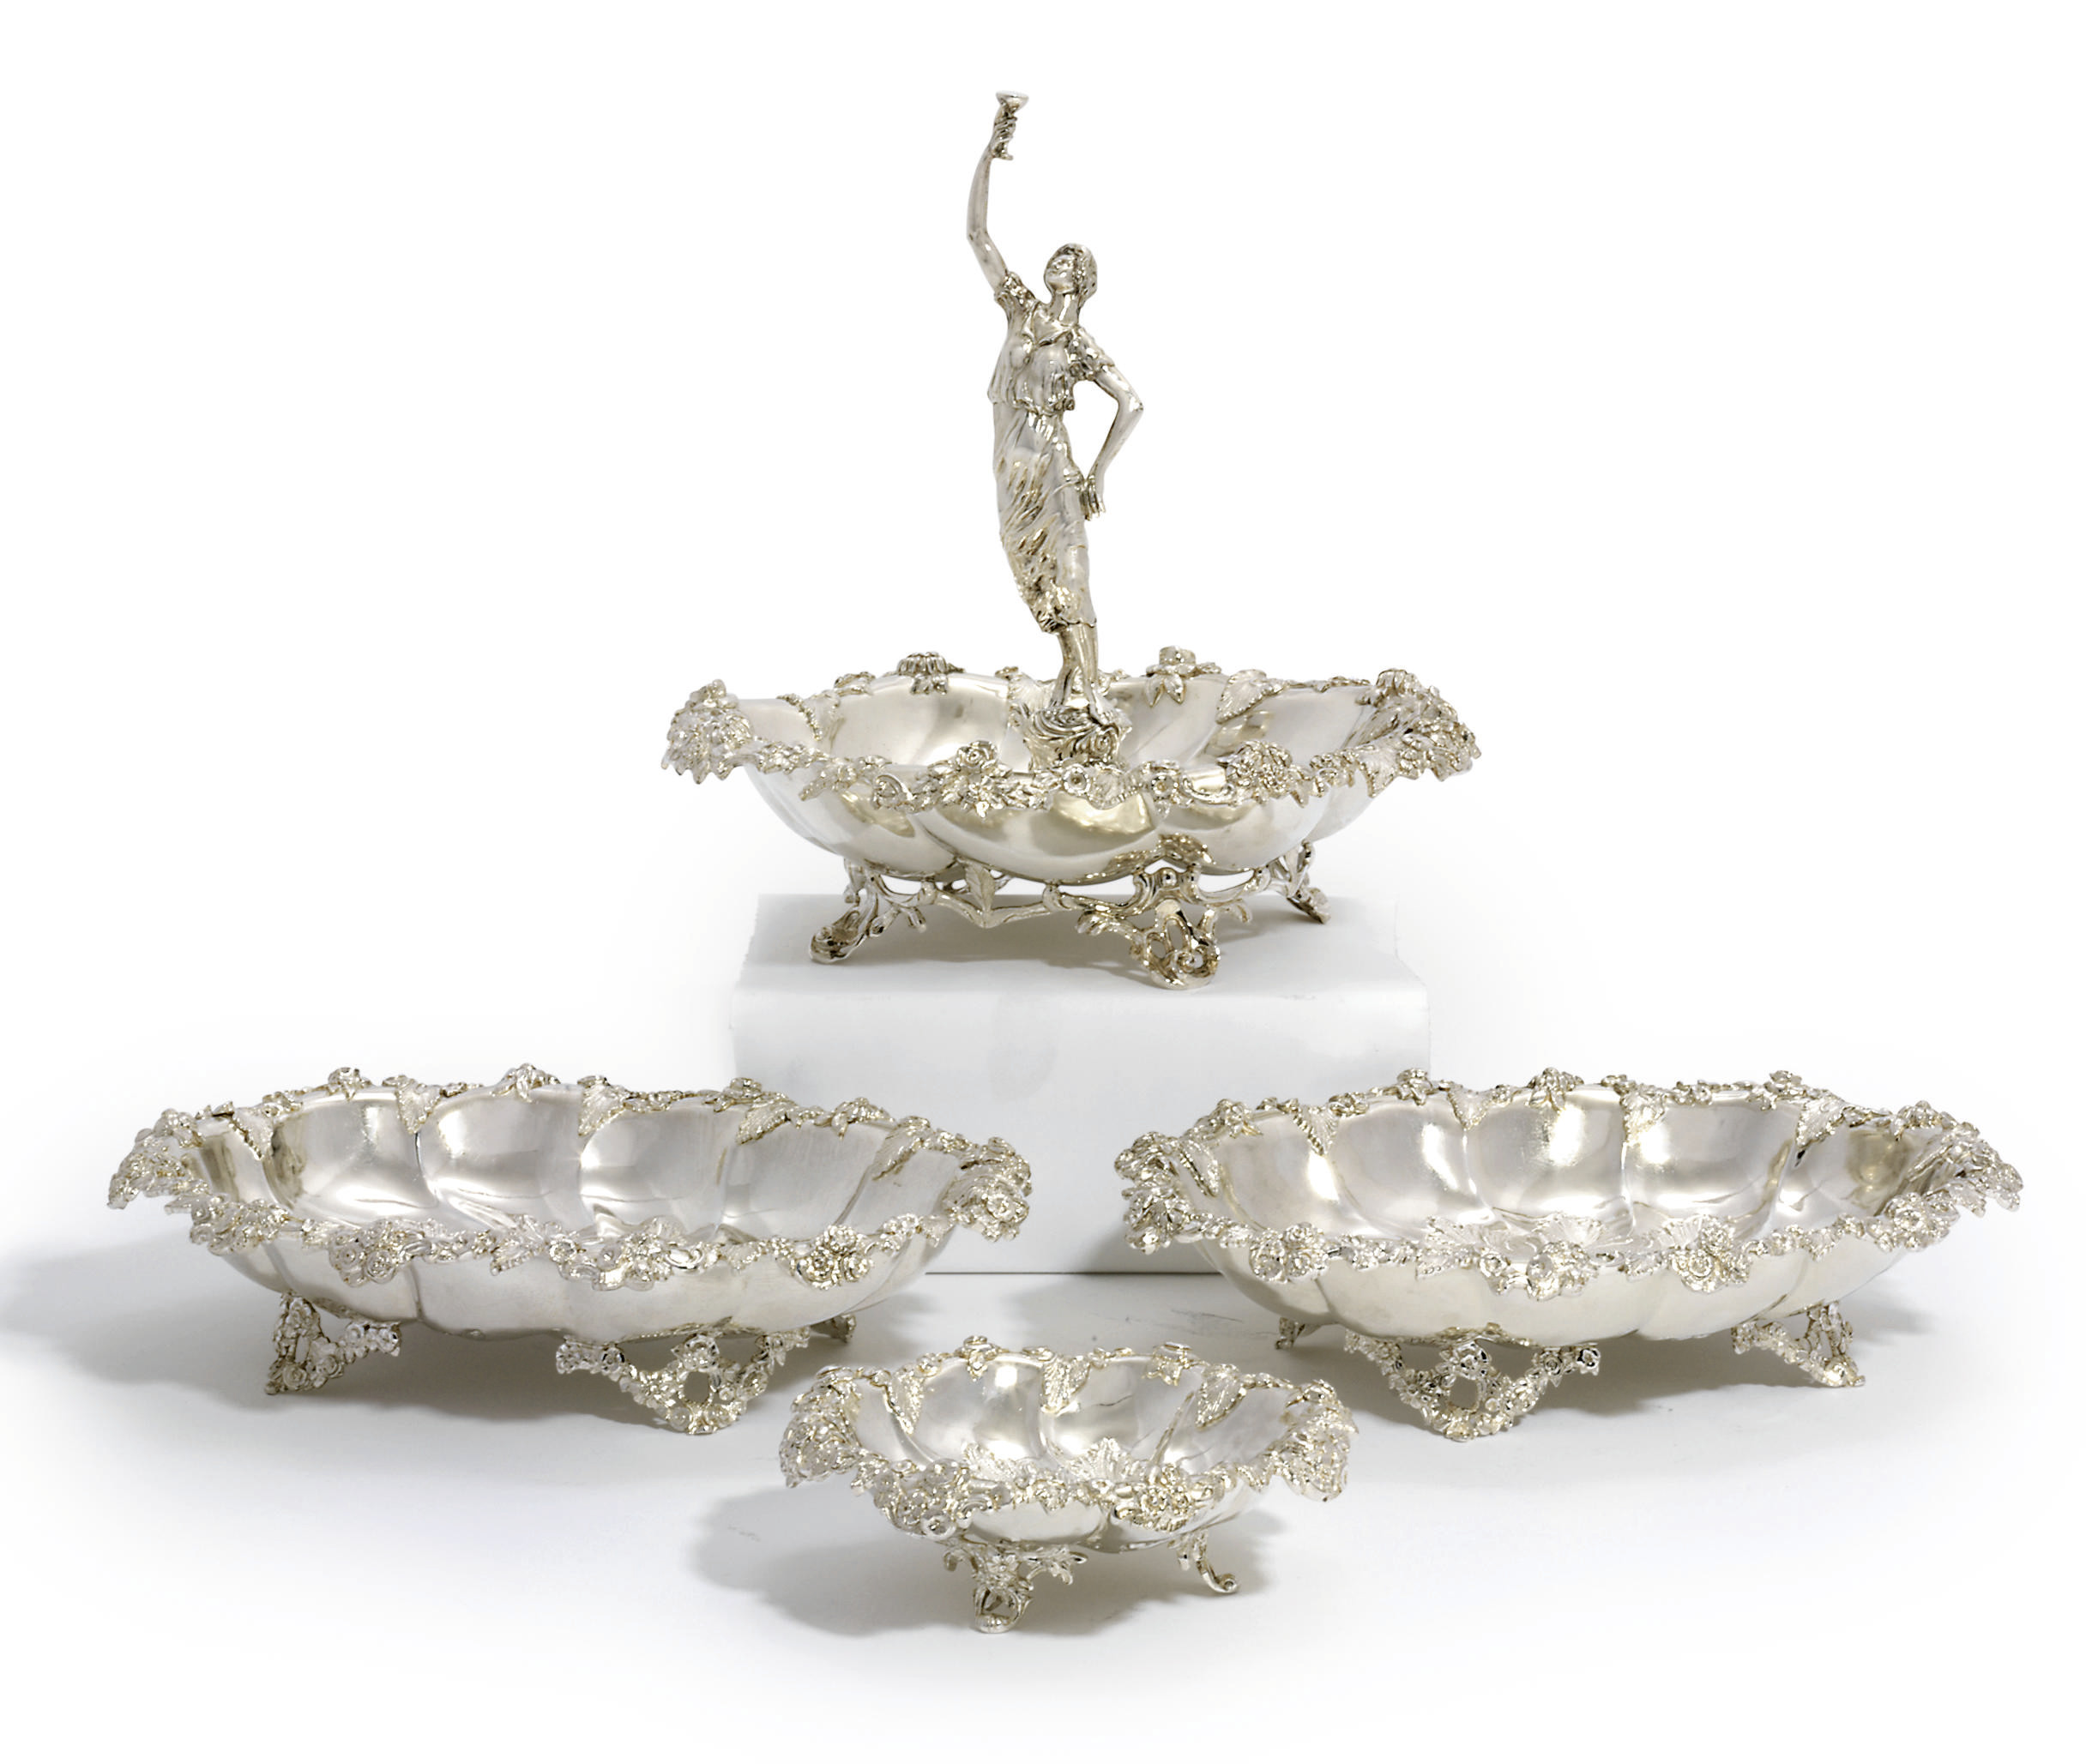 A SUITE OF FOUR VICTORIAN SILVER CENTREPIECE DISHES